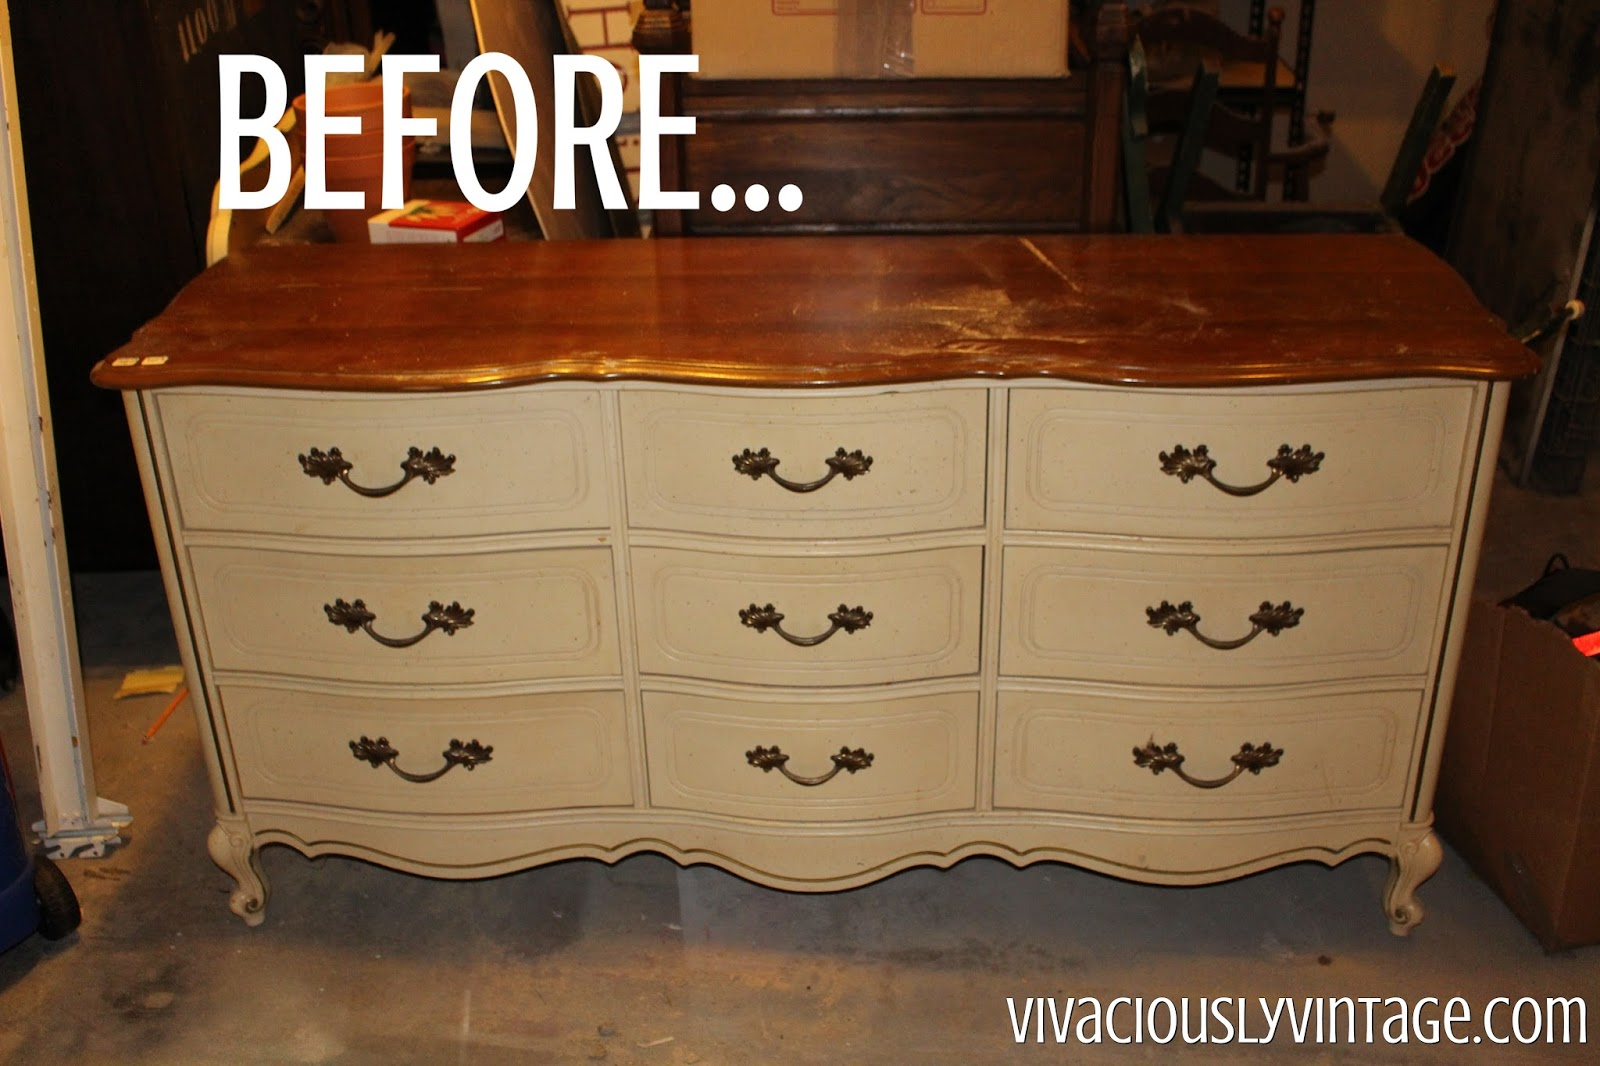 Brand New Ansley Designs: Gold Dipped Coral French Provincial Dresser! QL11